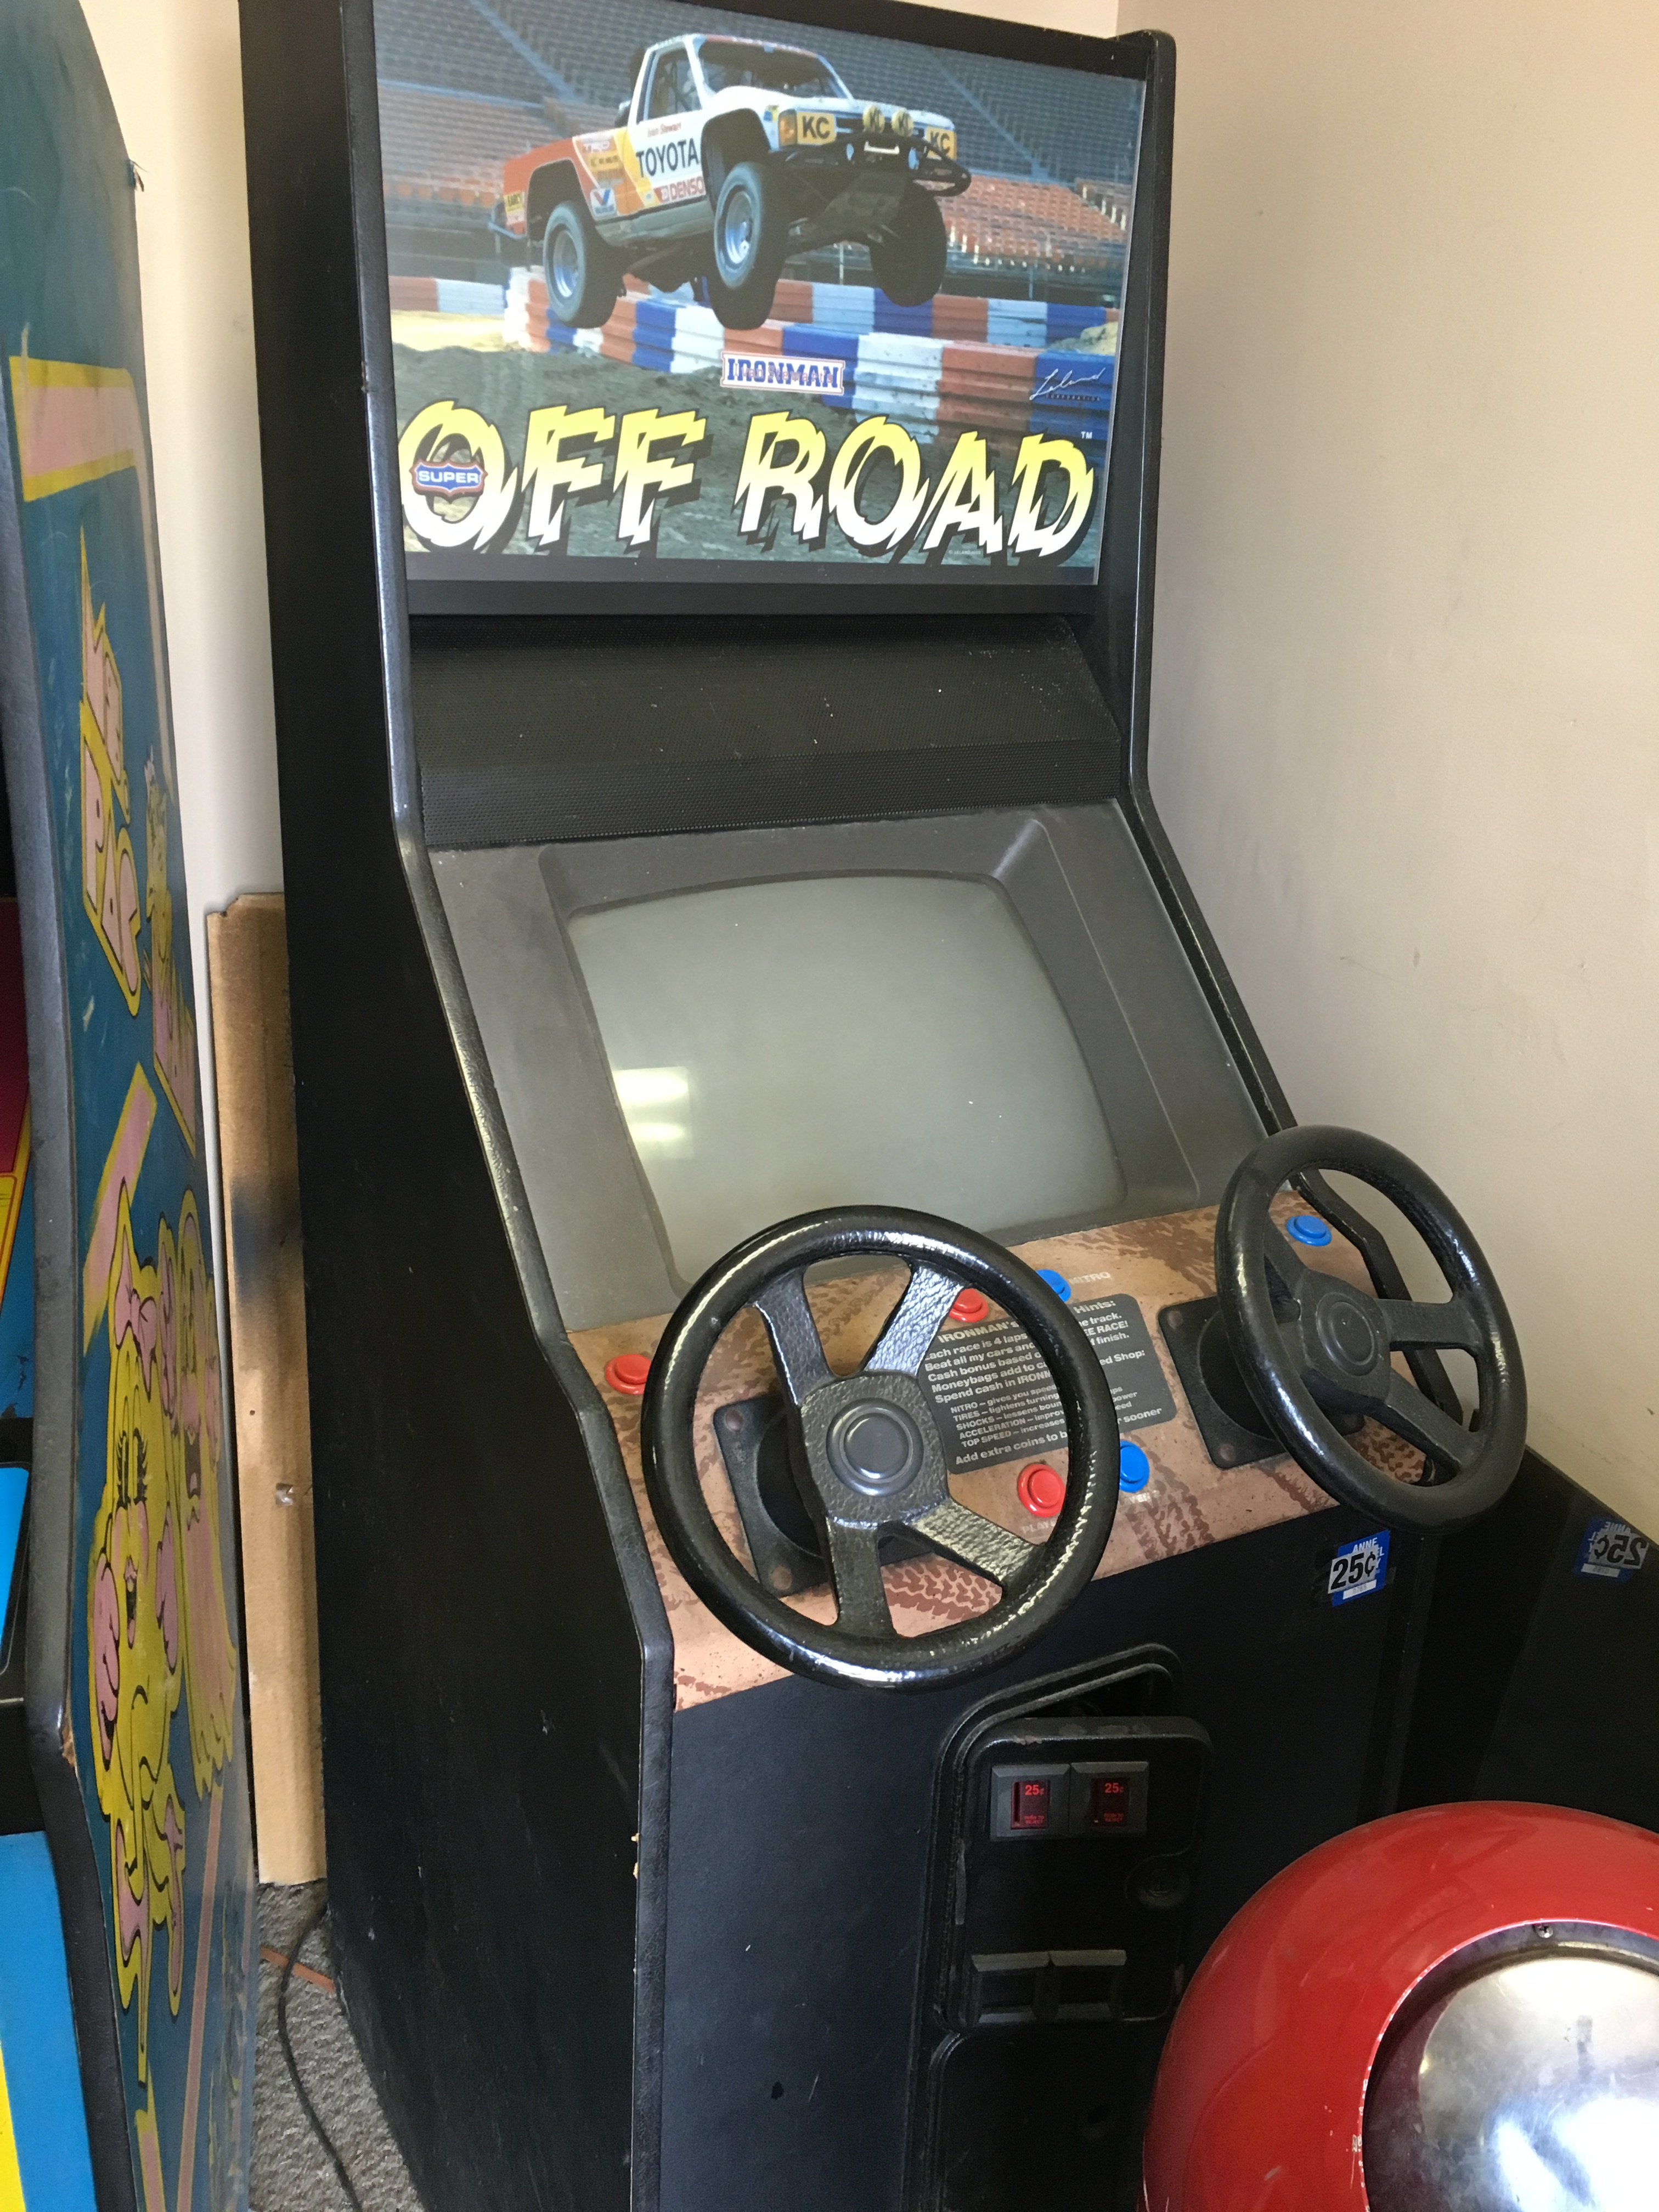 off road arcade game